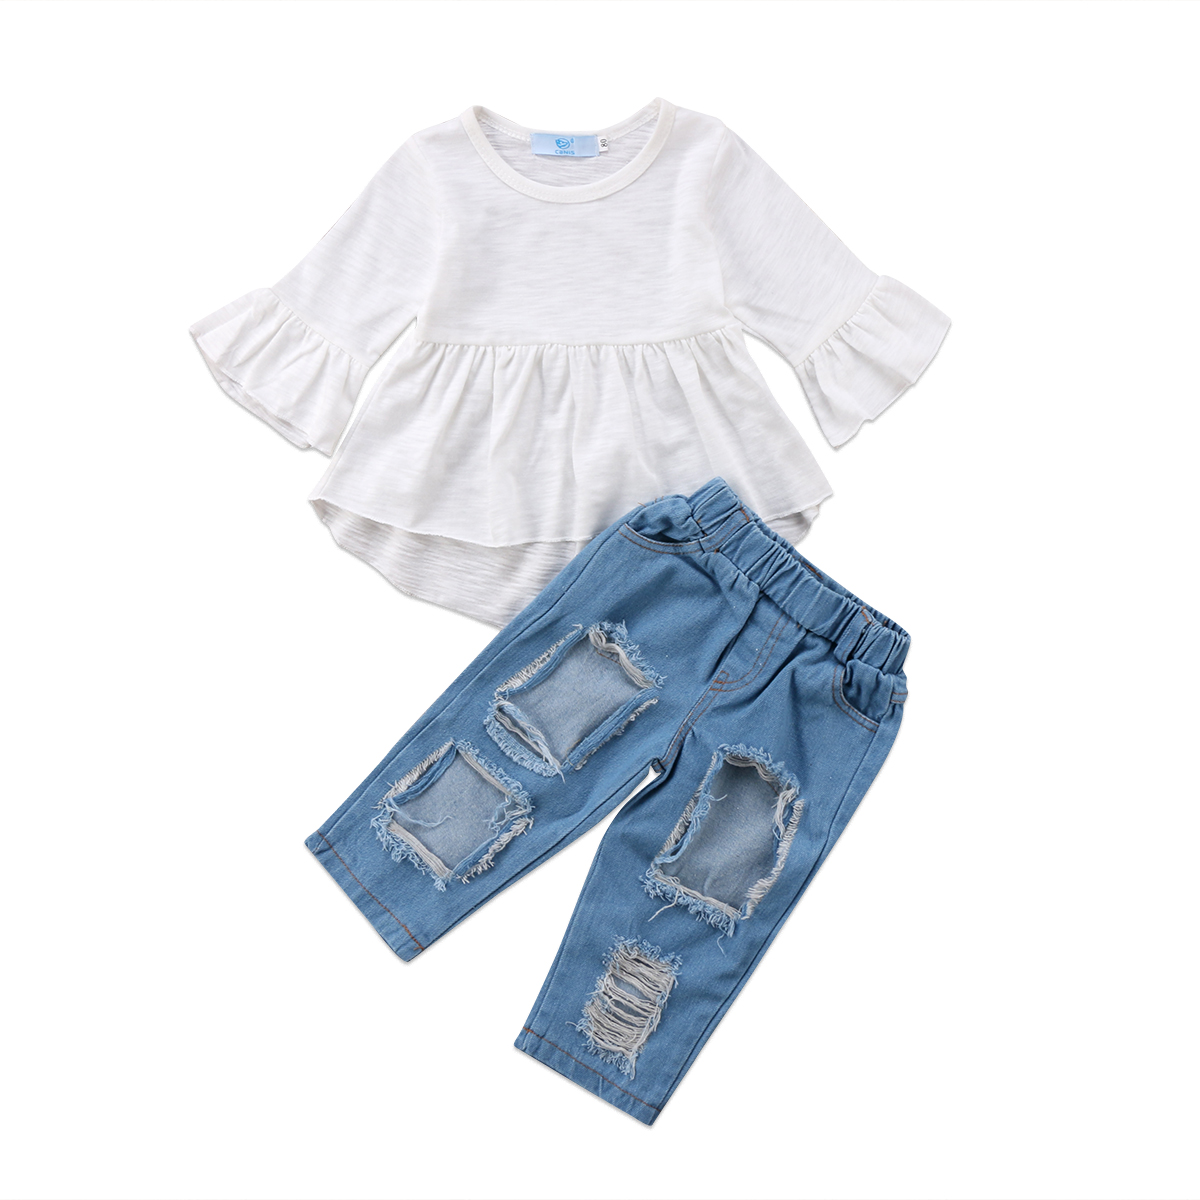 Toddler Kids Baby Girl Outfit Clothes Long Sleeve T-Shirt+Hole Jeans Pant Set US